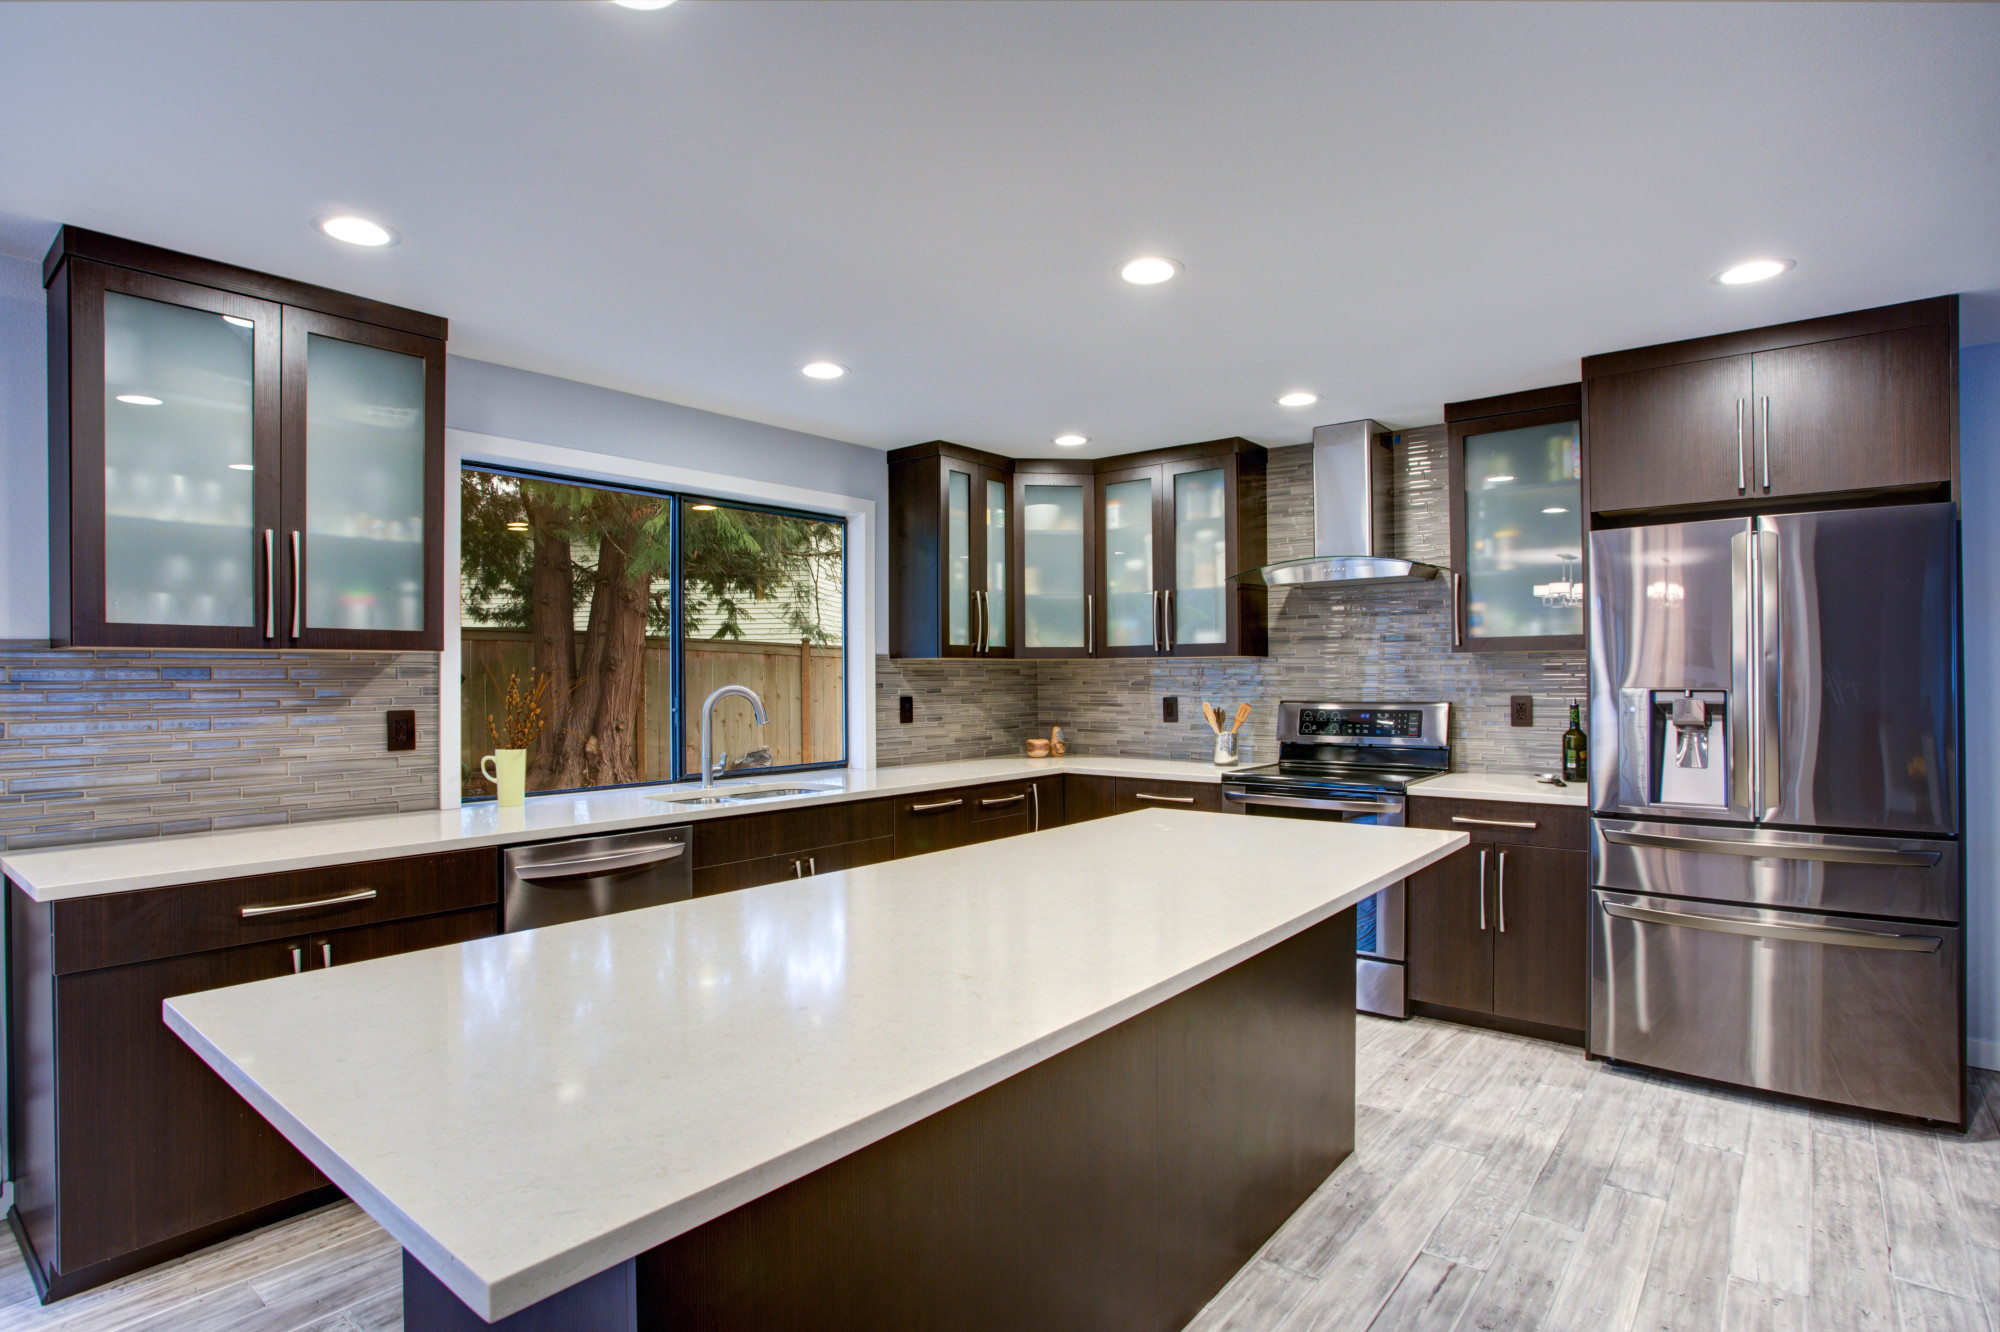 Which Type of Countertops Will Save You Time & Trouble? The Best Materials For Low Maintenance Countertops